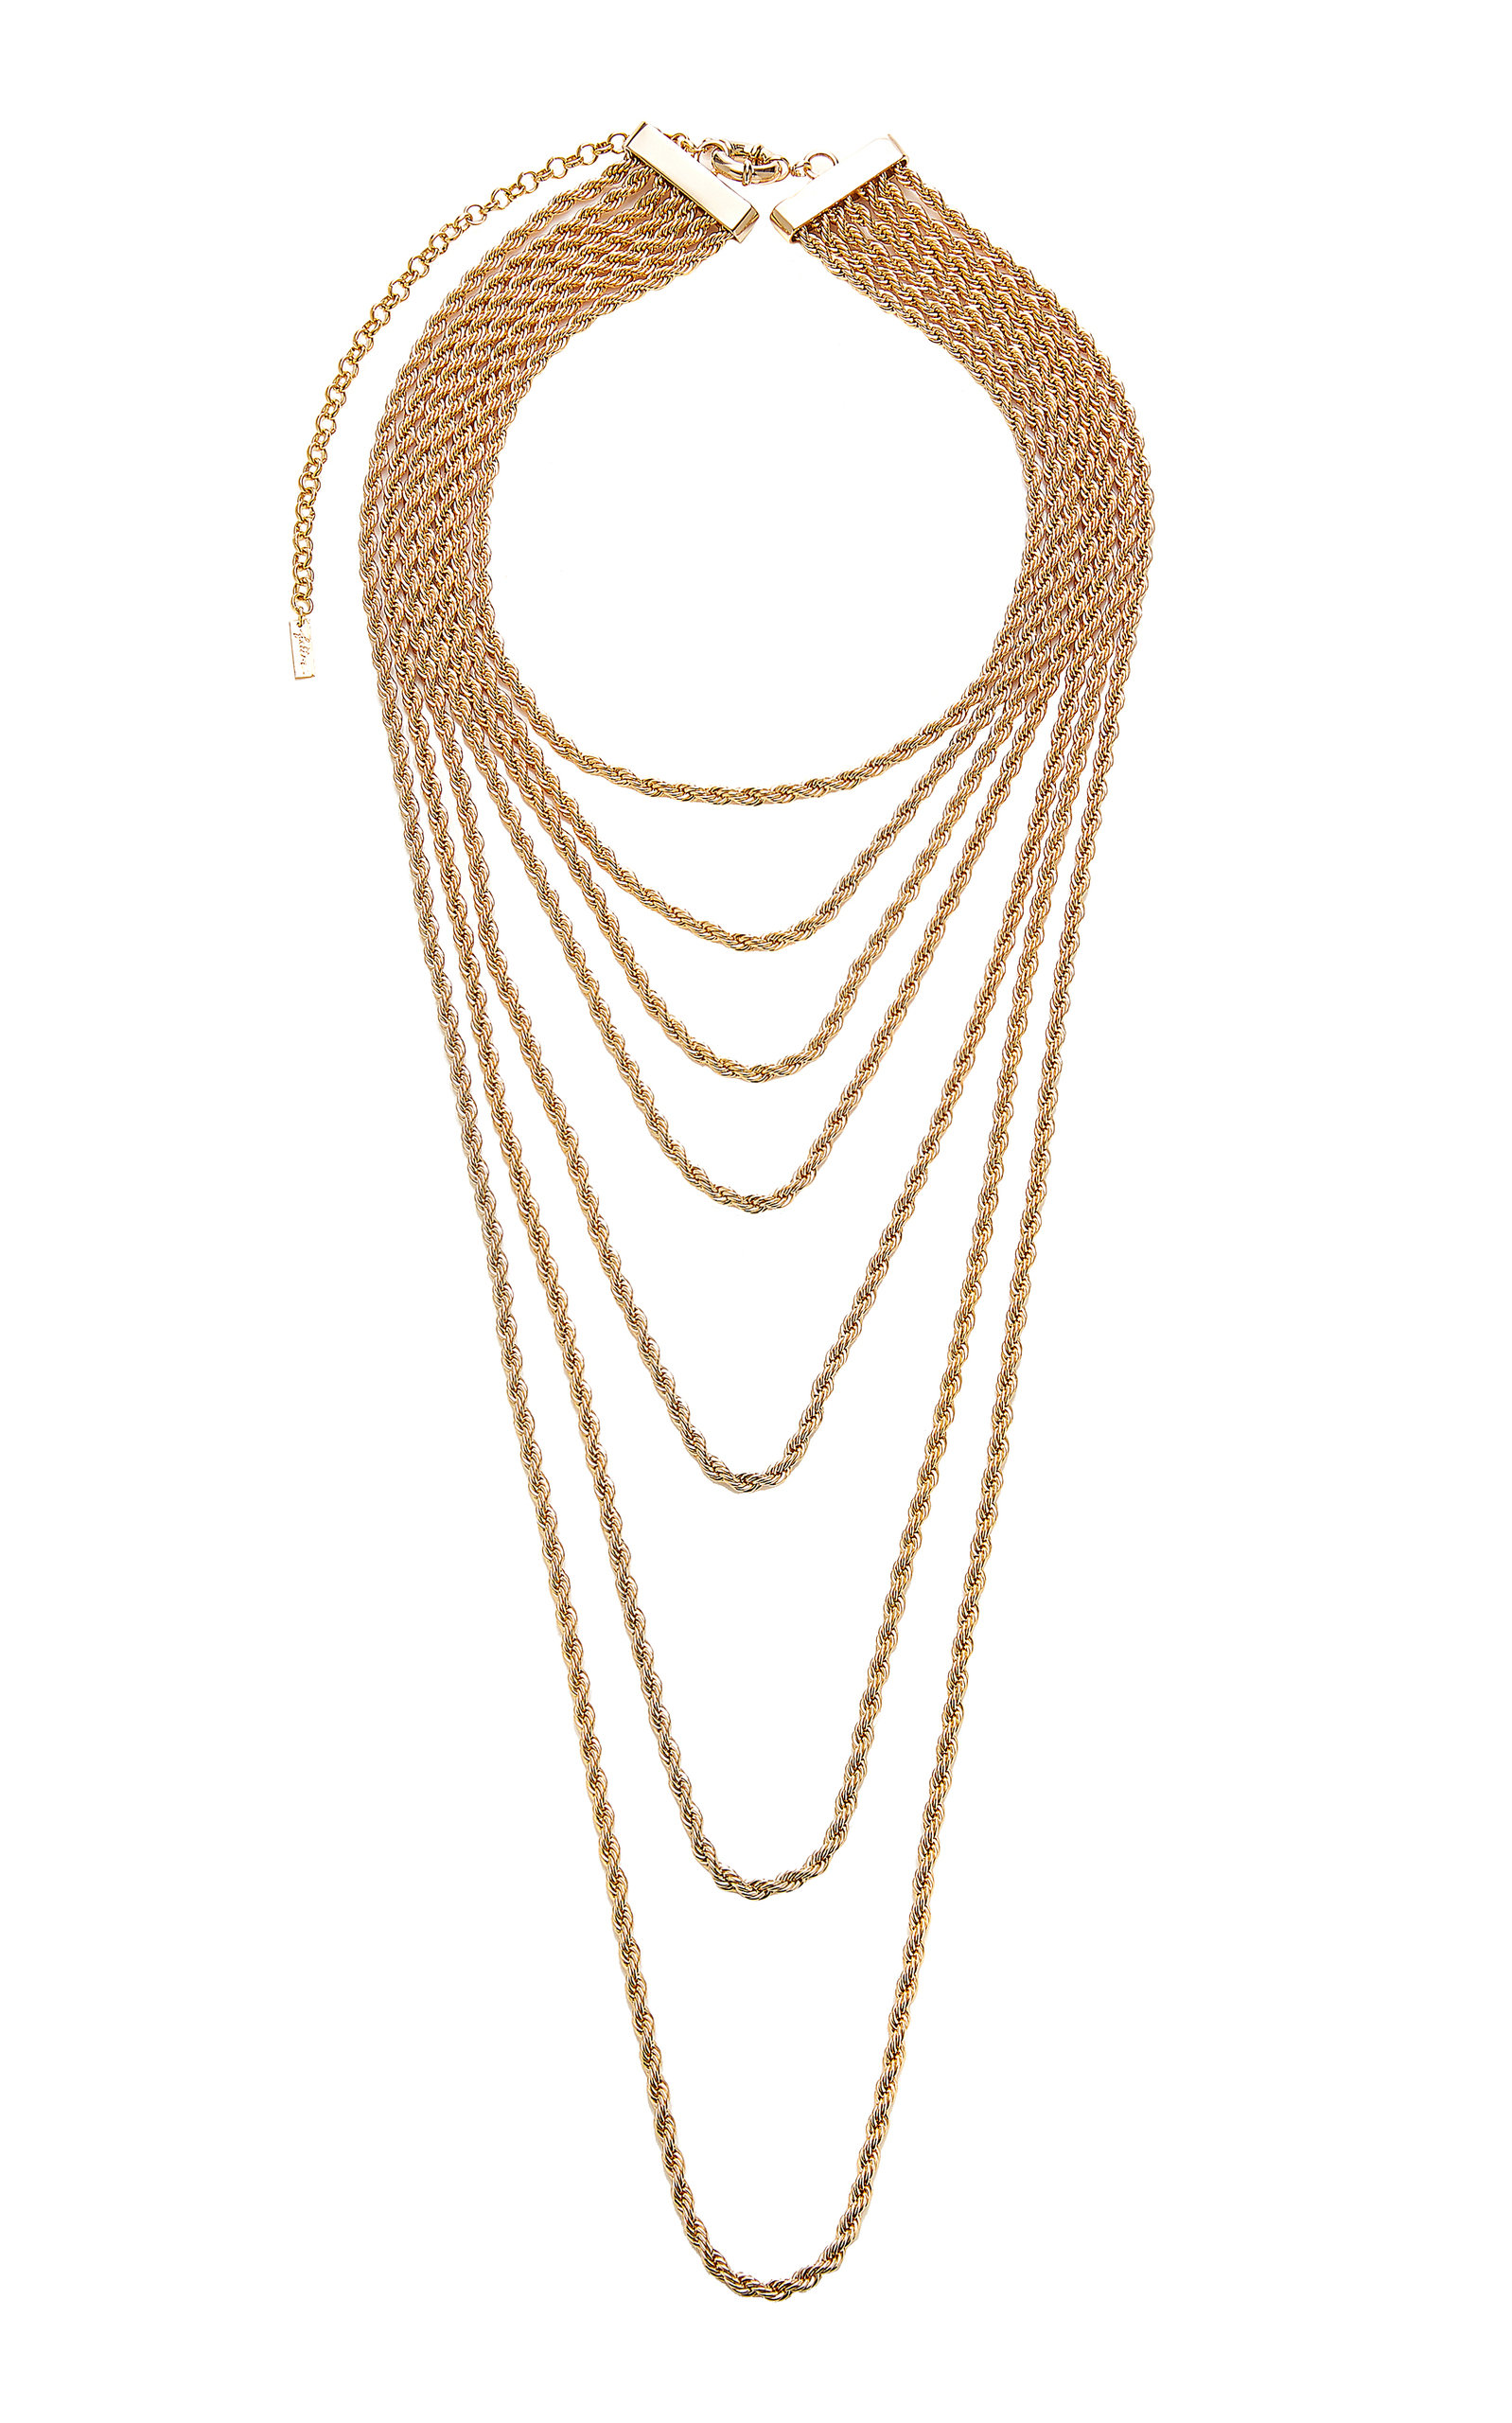 FALLON GOLD-PLATED BRASS LAYERED NECKLACE